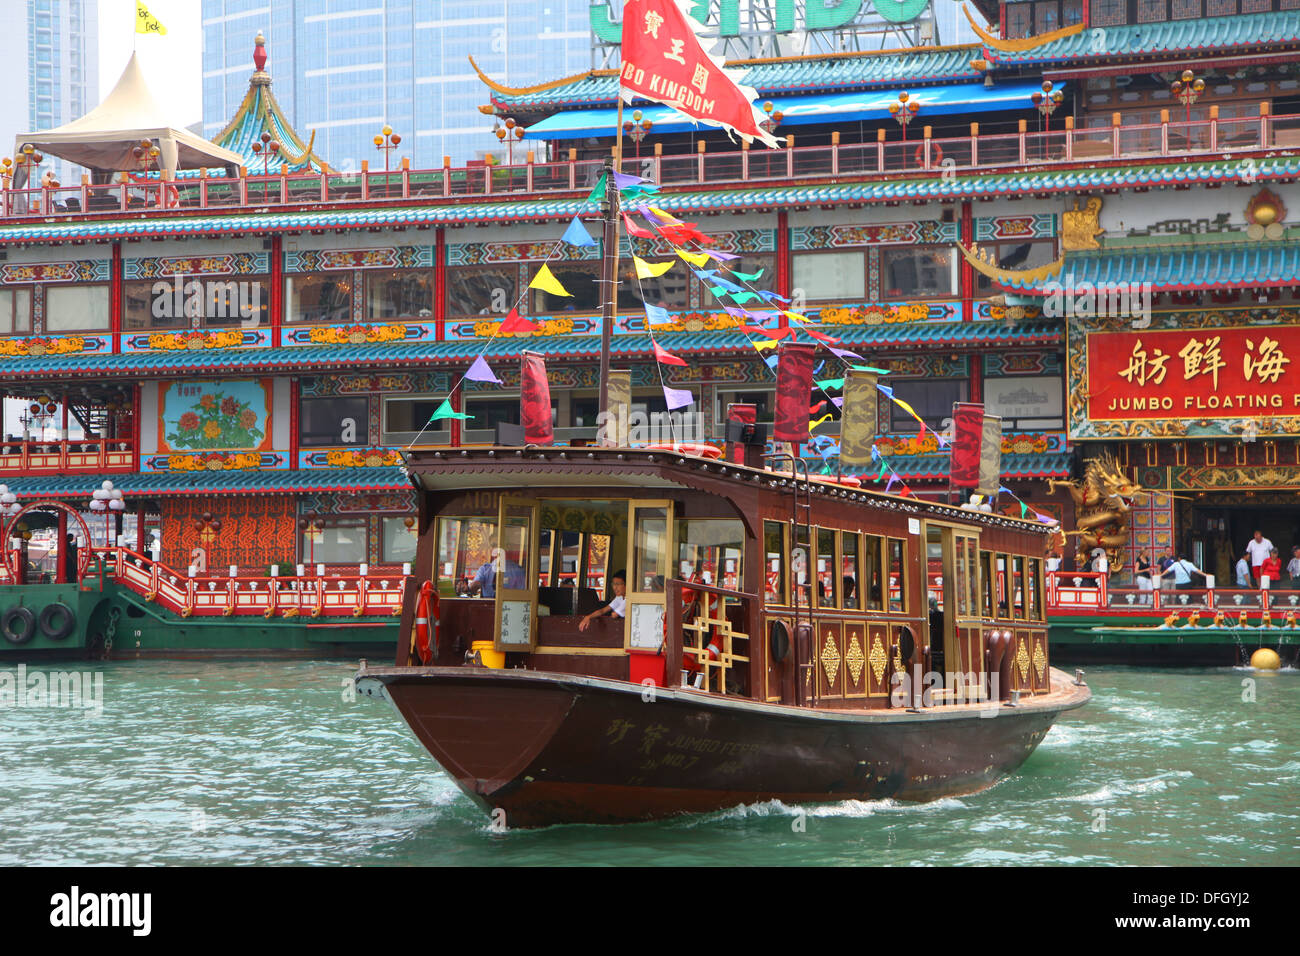 Chinese Junk in Aberdeen Harbour ferrying diners to the Jumbo Floating Restaurant - Stock Image